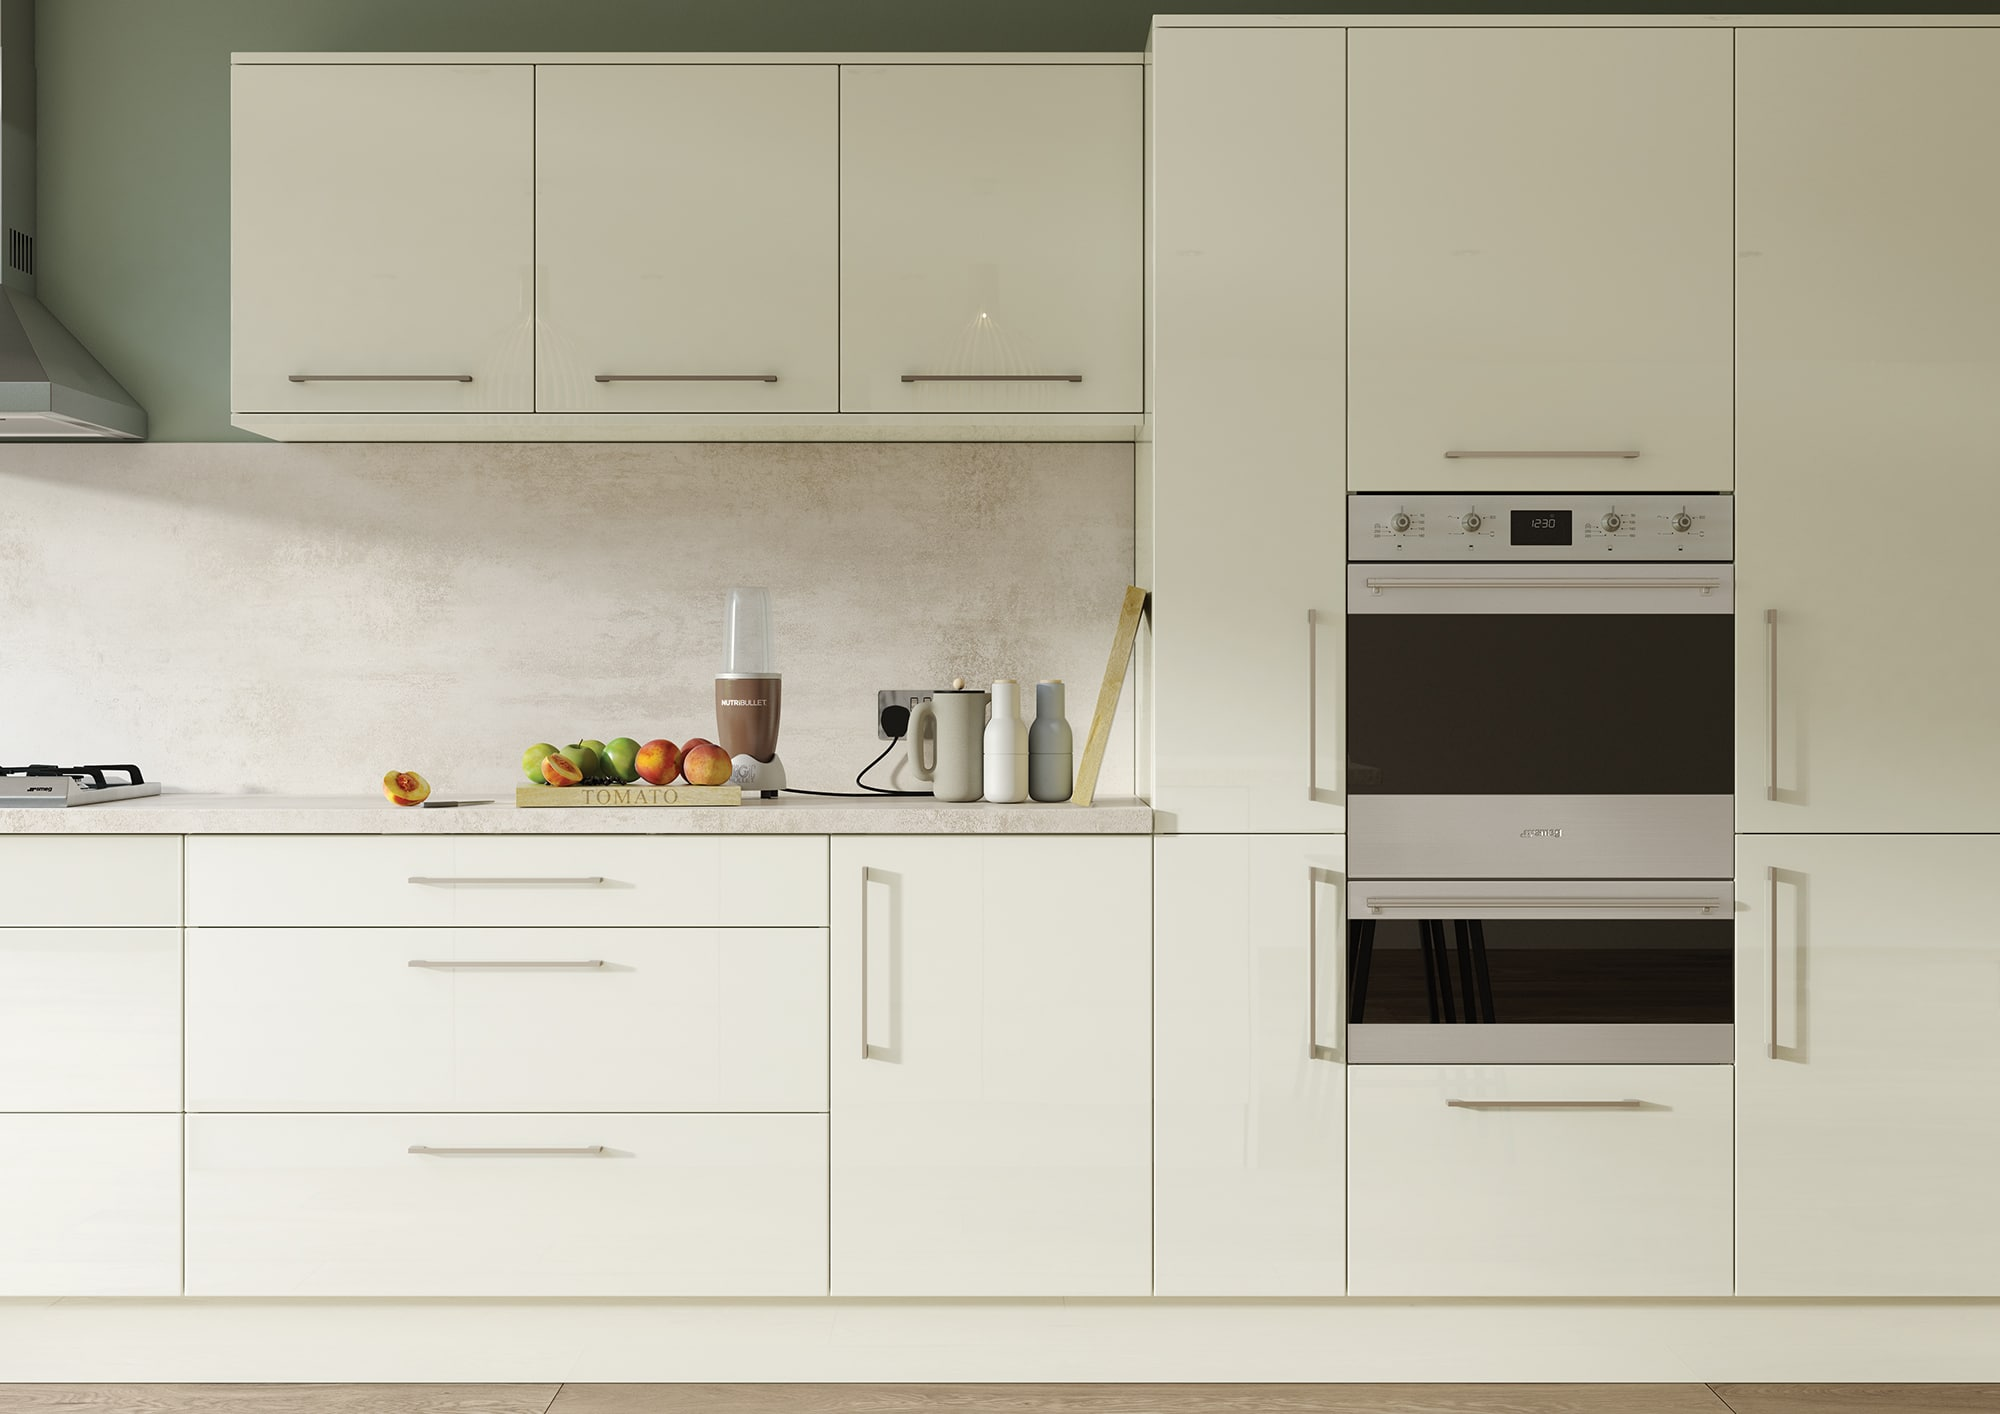 Cerney Gloss Porcelain Cameo 2, from Riley James Kitchens. www.rileyjames.co.uk